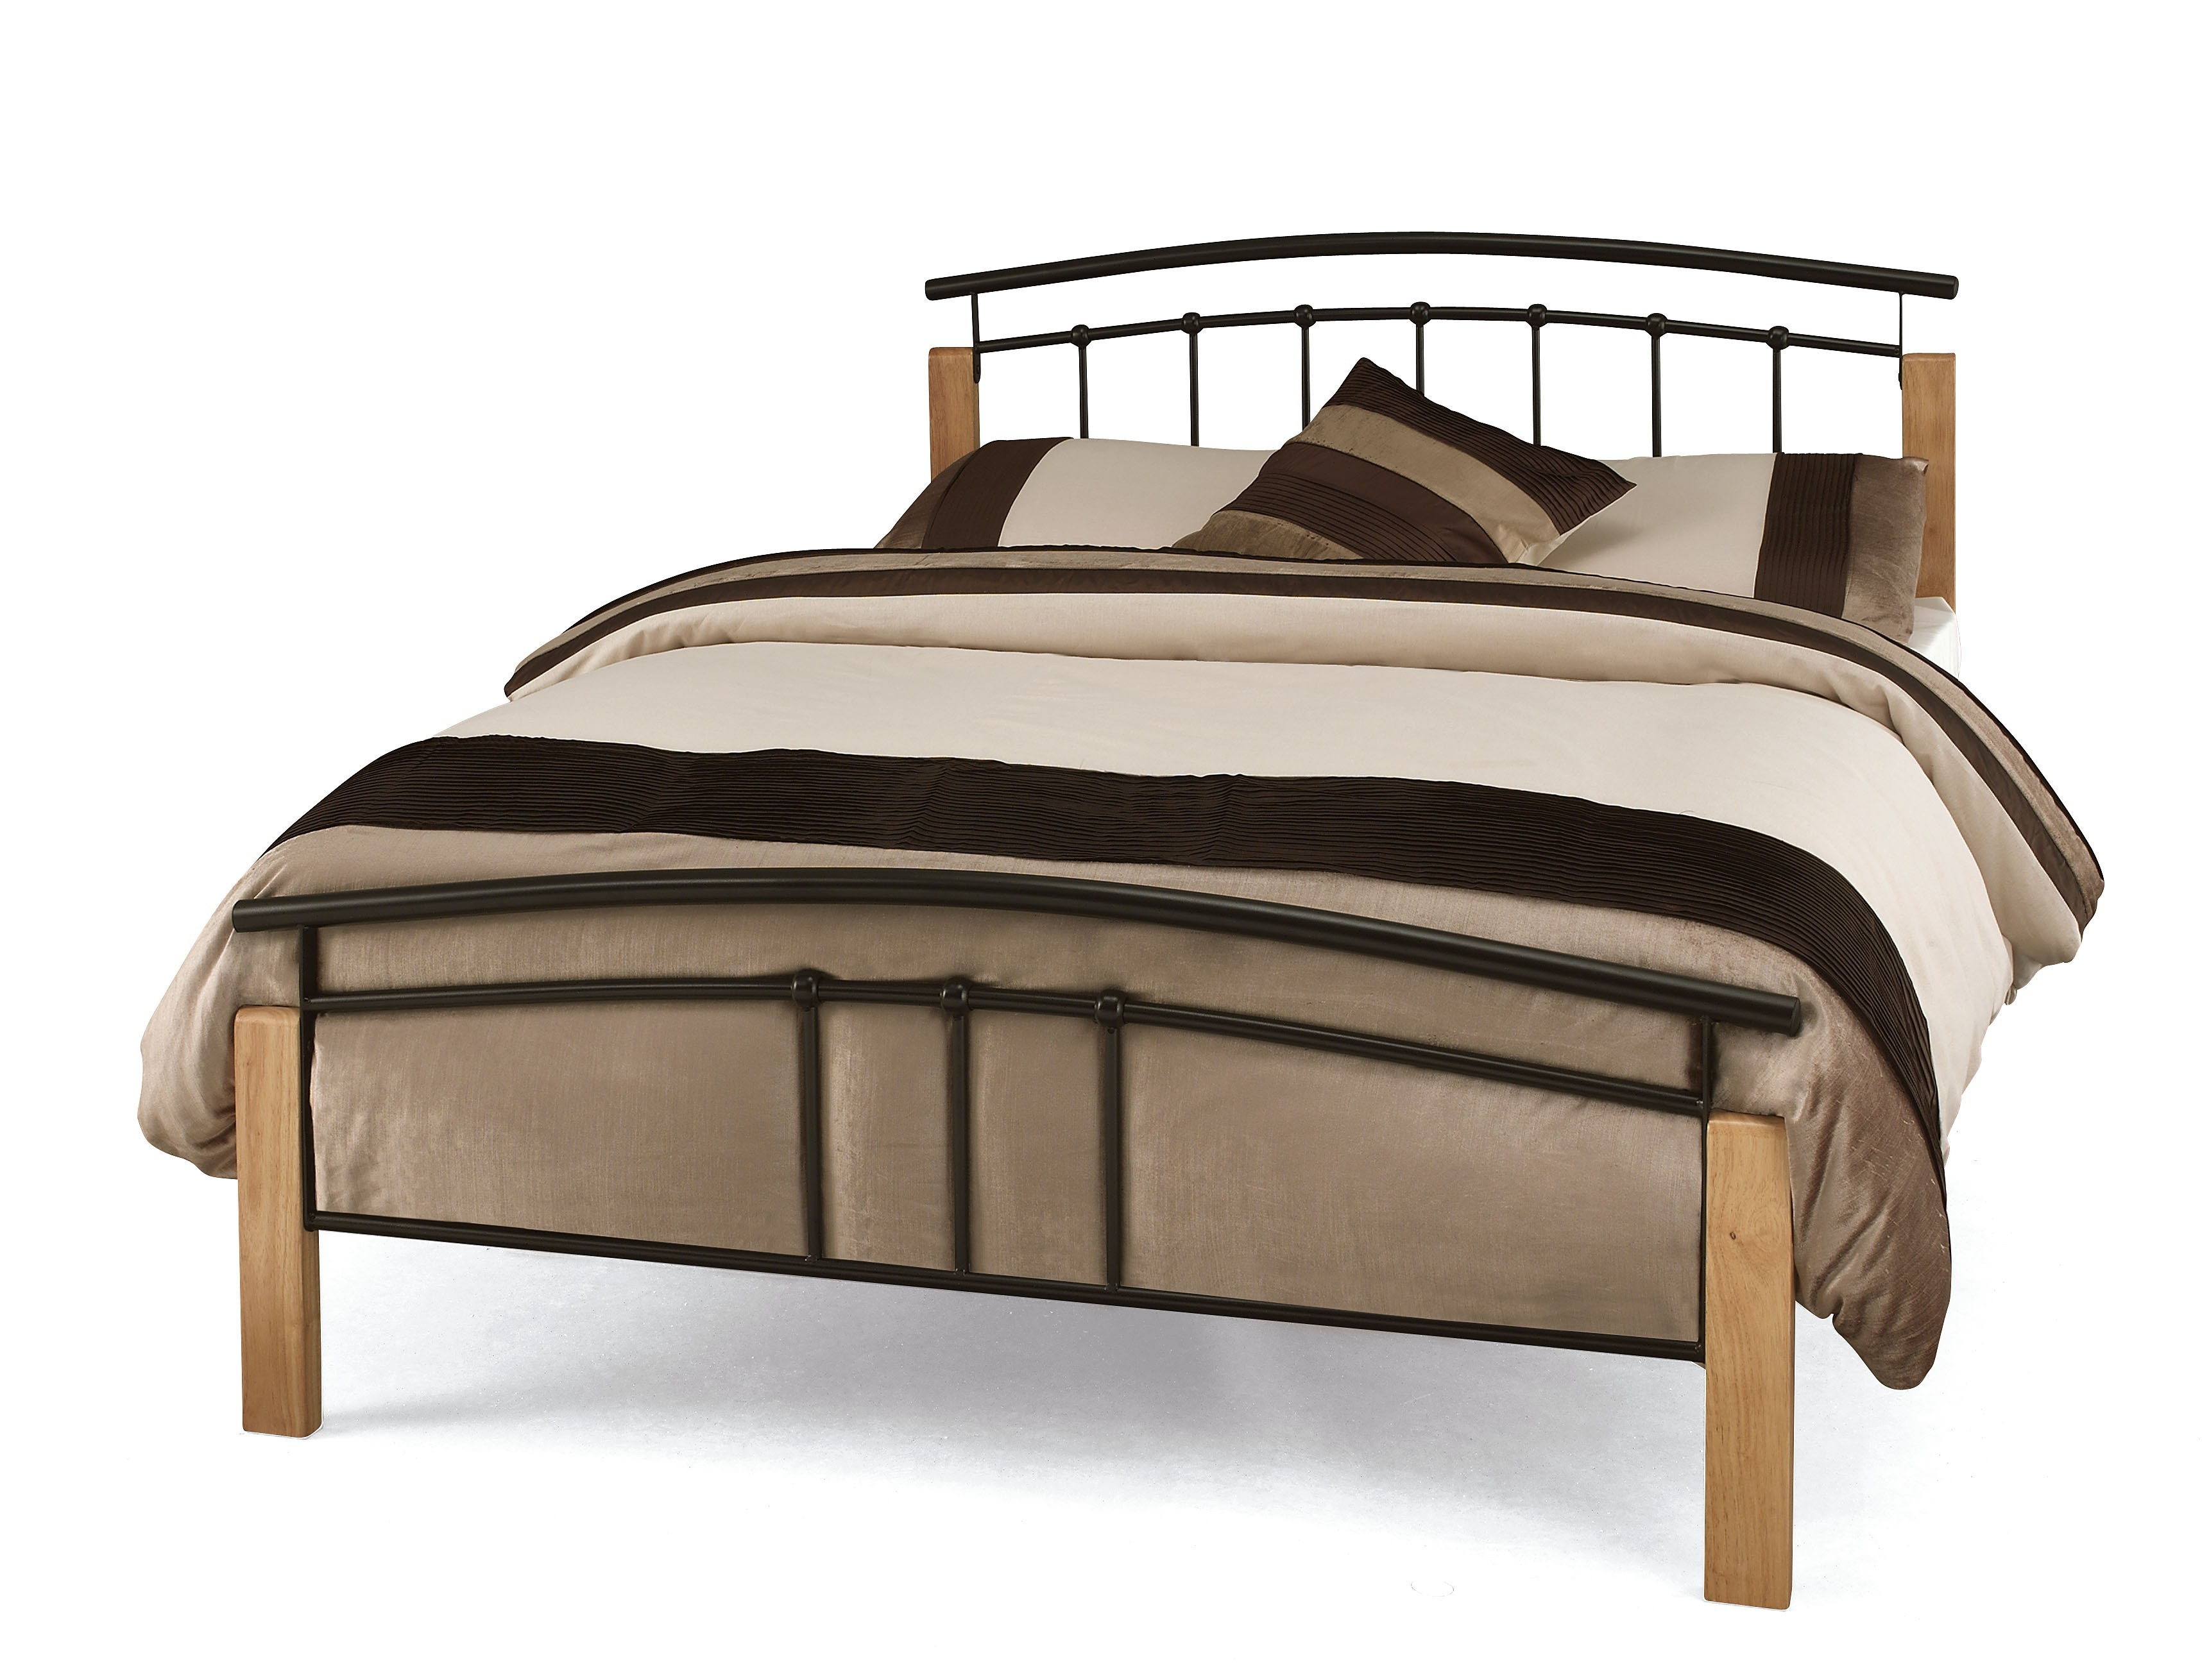 https://www.firstfurniture.co.uk/pub/media/catalog/product/t/e/tetras_black_bed_3.jpg